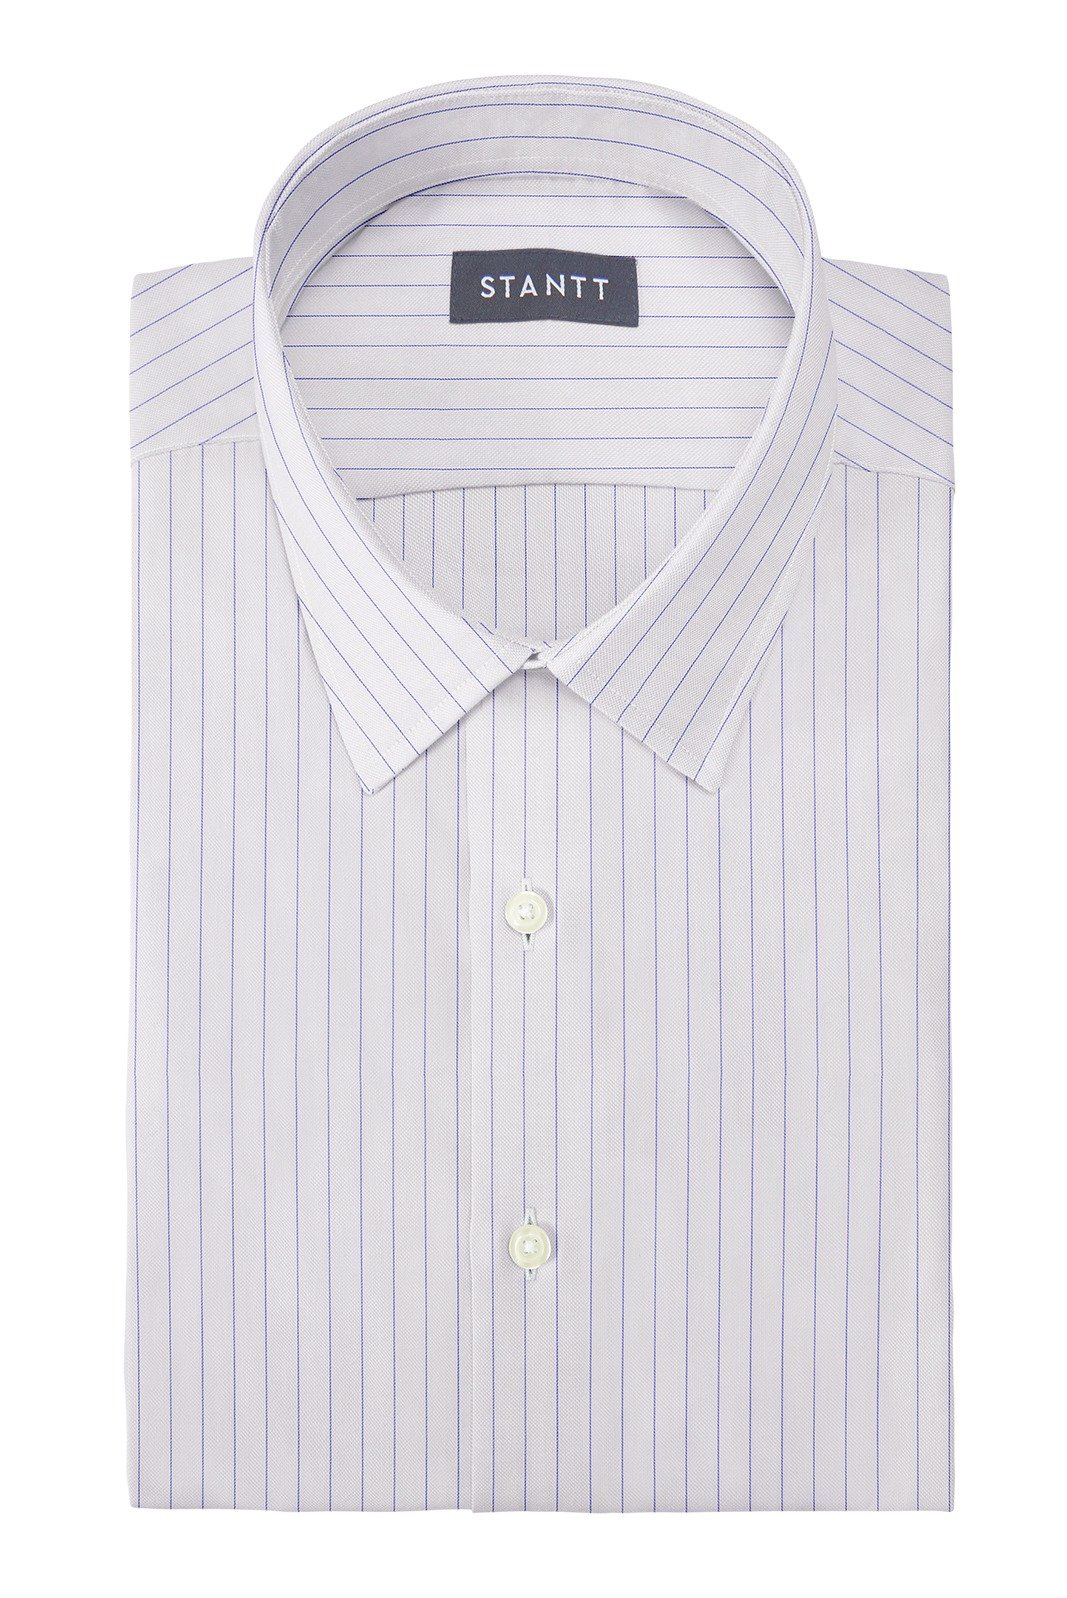 Wrinkle-Resistant Blue Hairline Stripe: Semi-Spread Collar, French Cuff